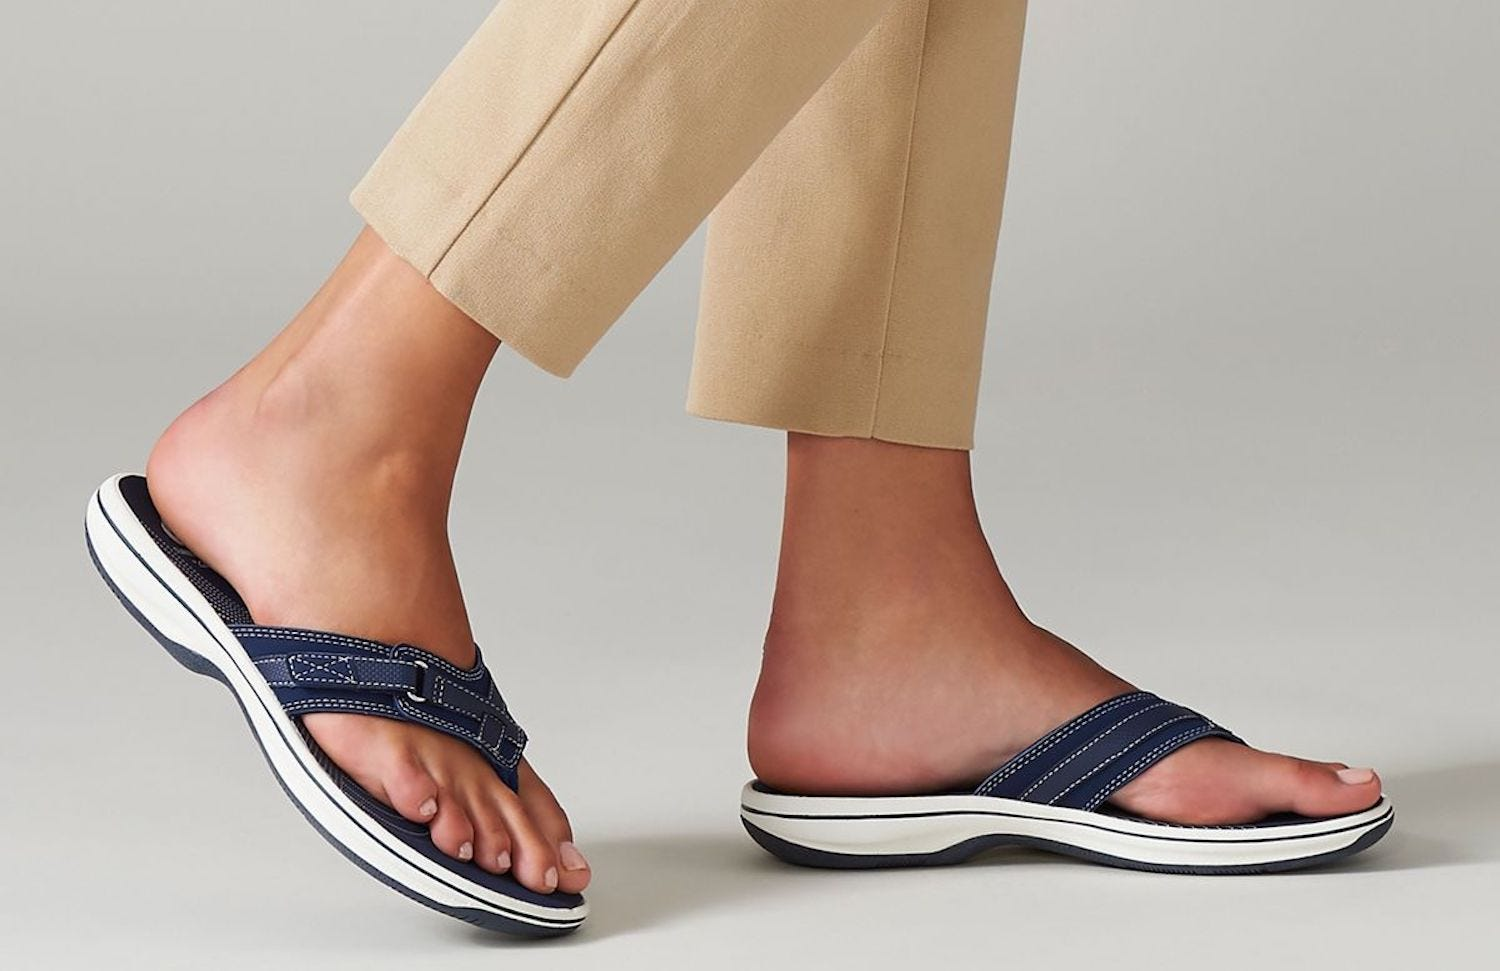 A woman's feet in cropped khaki pants and navy blue sandals